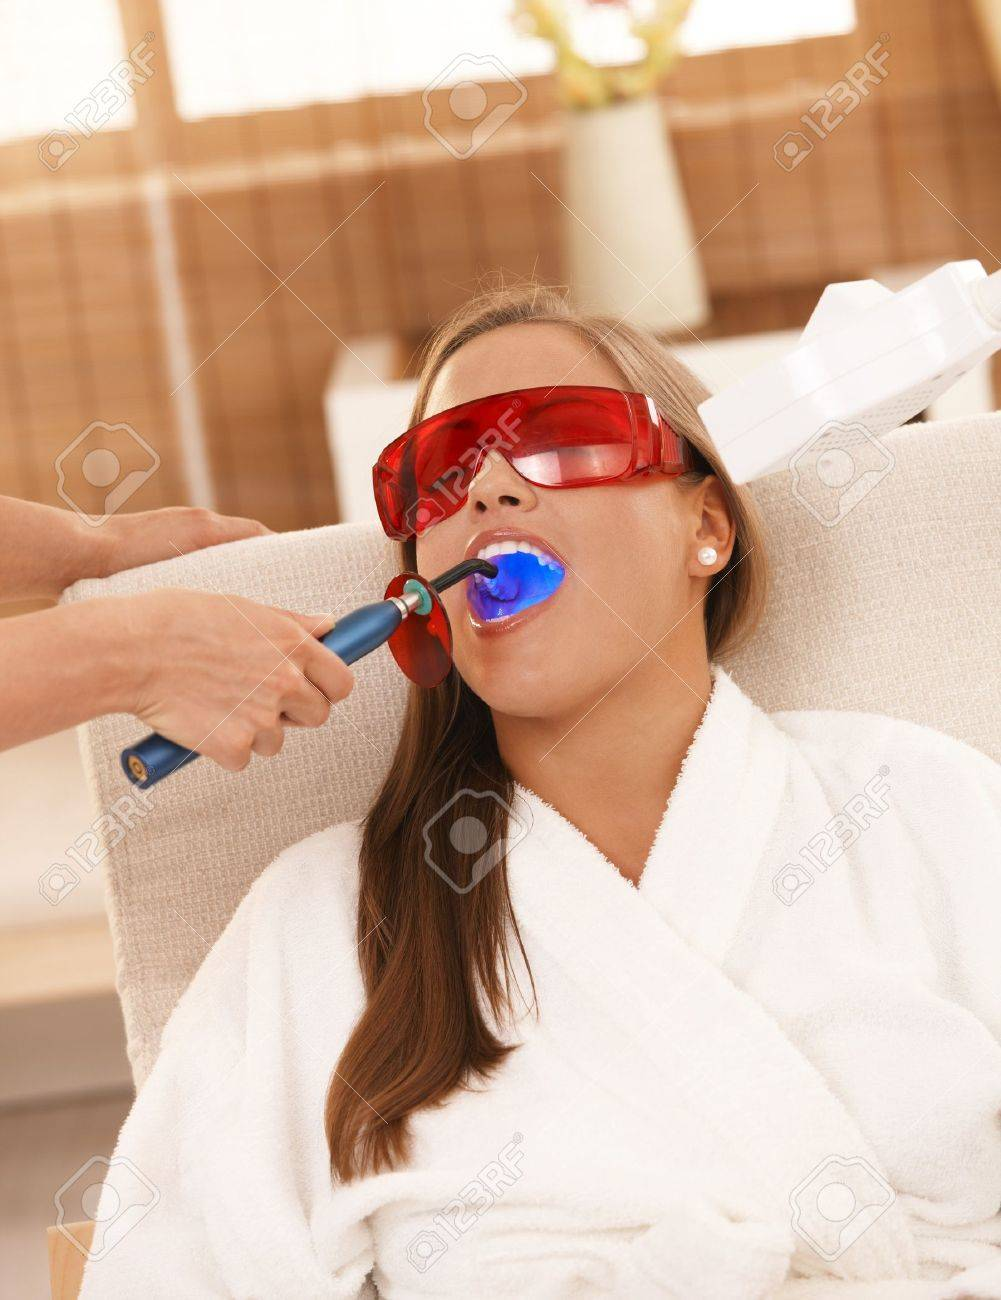 Young woman getting laser tooth whitening treatment at spa. Stock Photo - 8141730